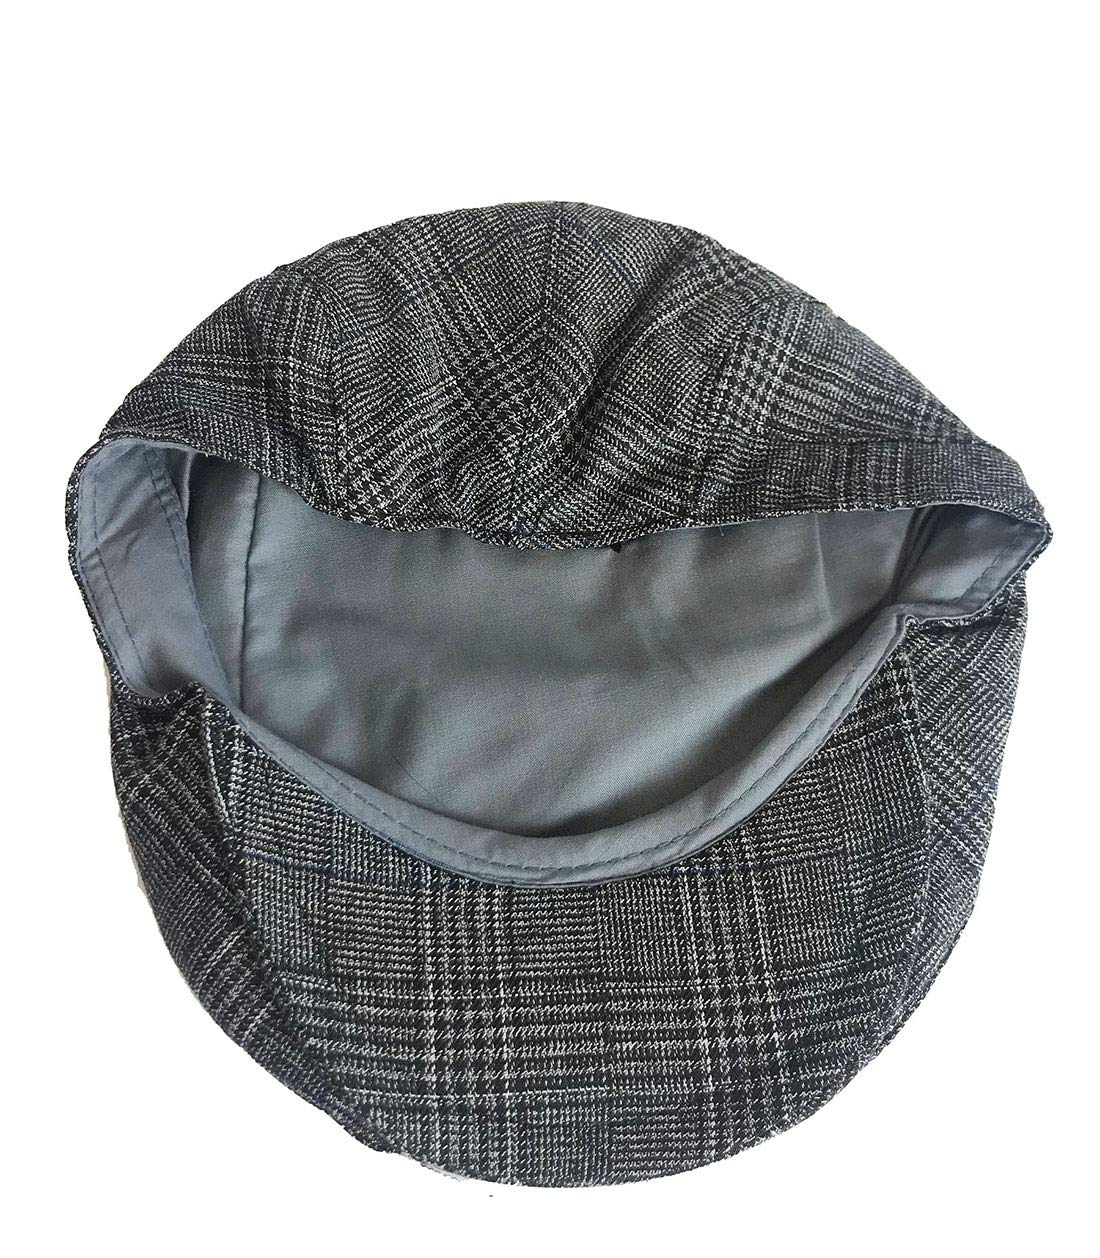 Flat Cap Hat Bow tie Glasses Braces Cigs Victorian Peaky Blinders Tommy Shelby